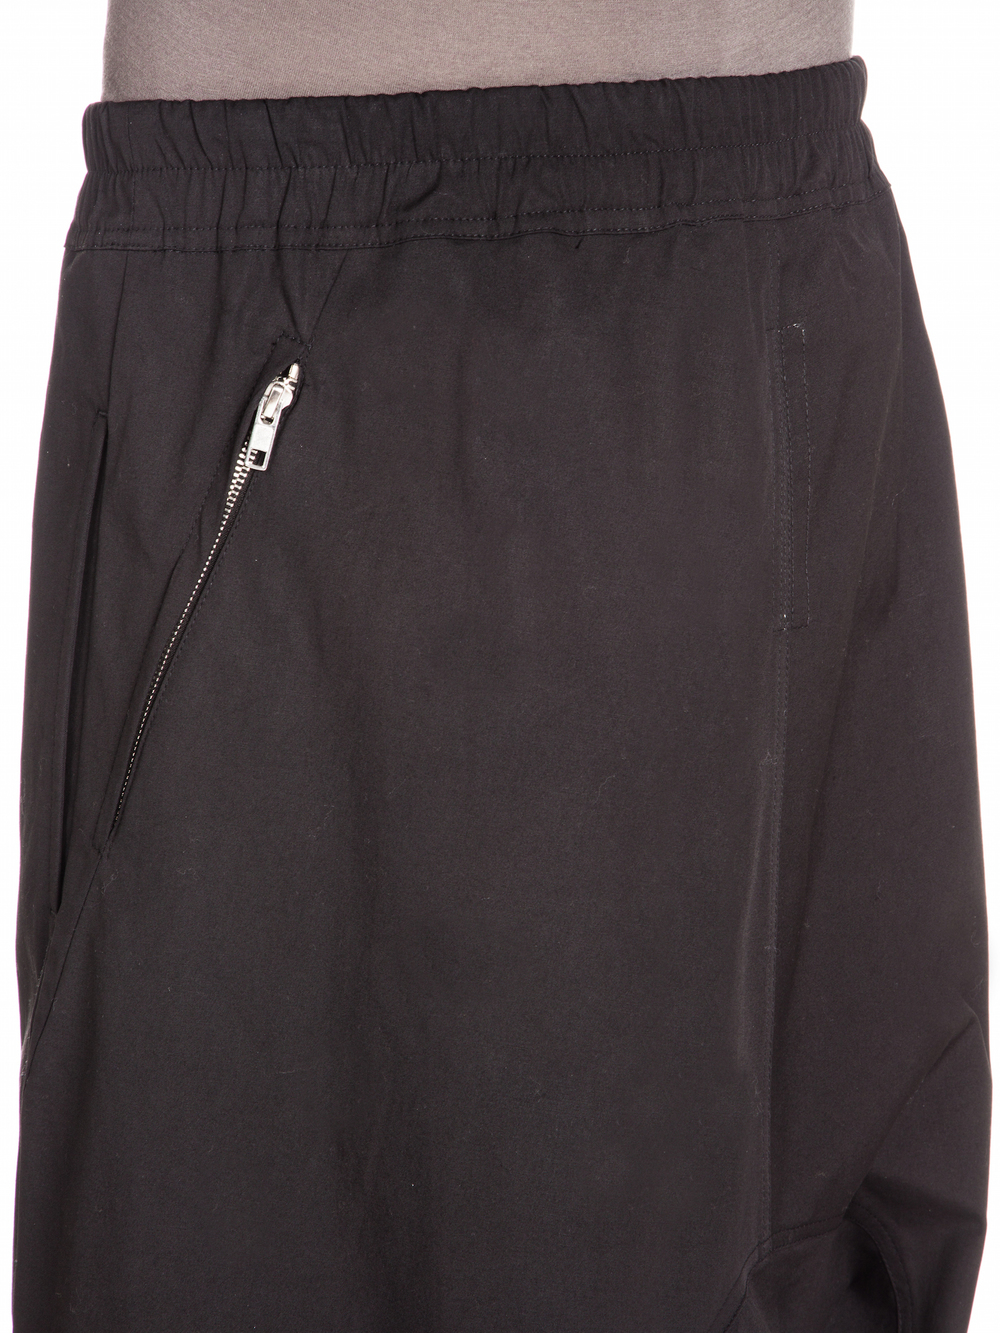 RICK OWENS BASKET SWINGER SHORTS